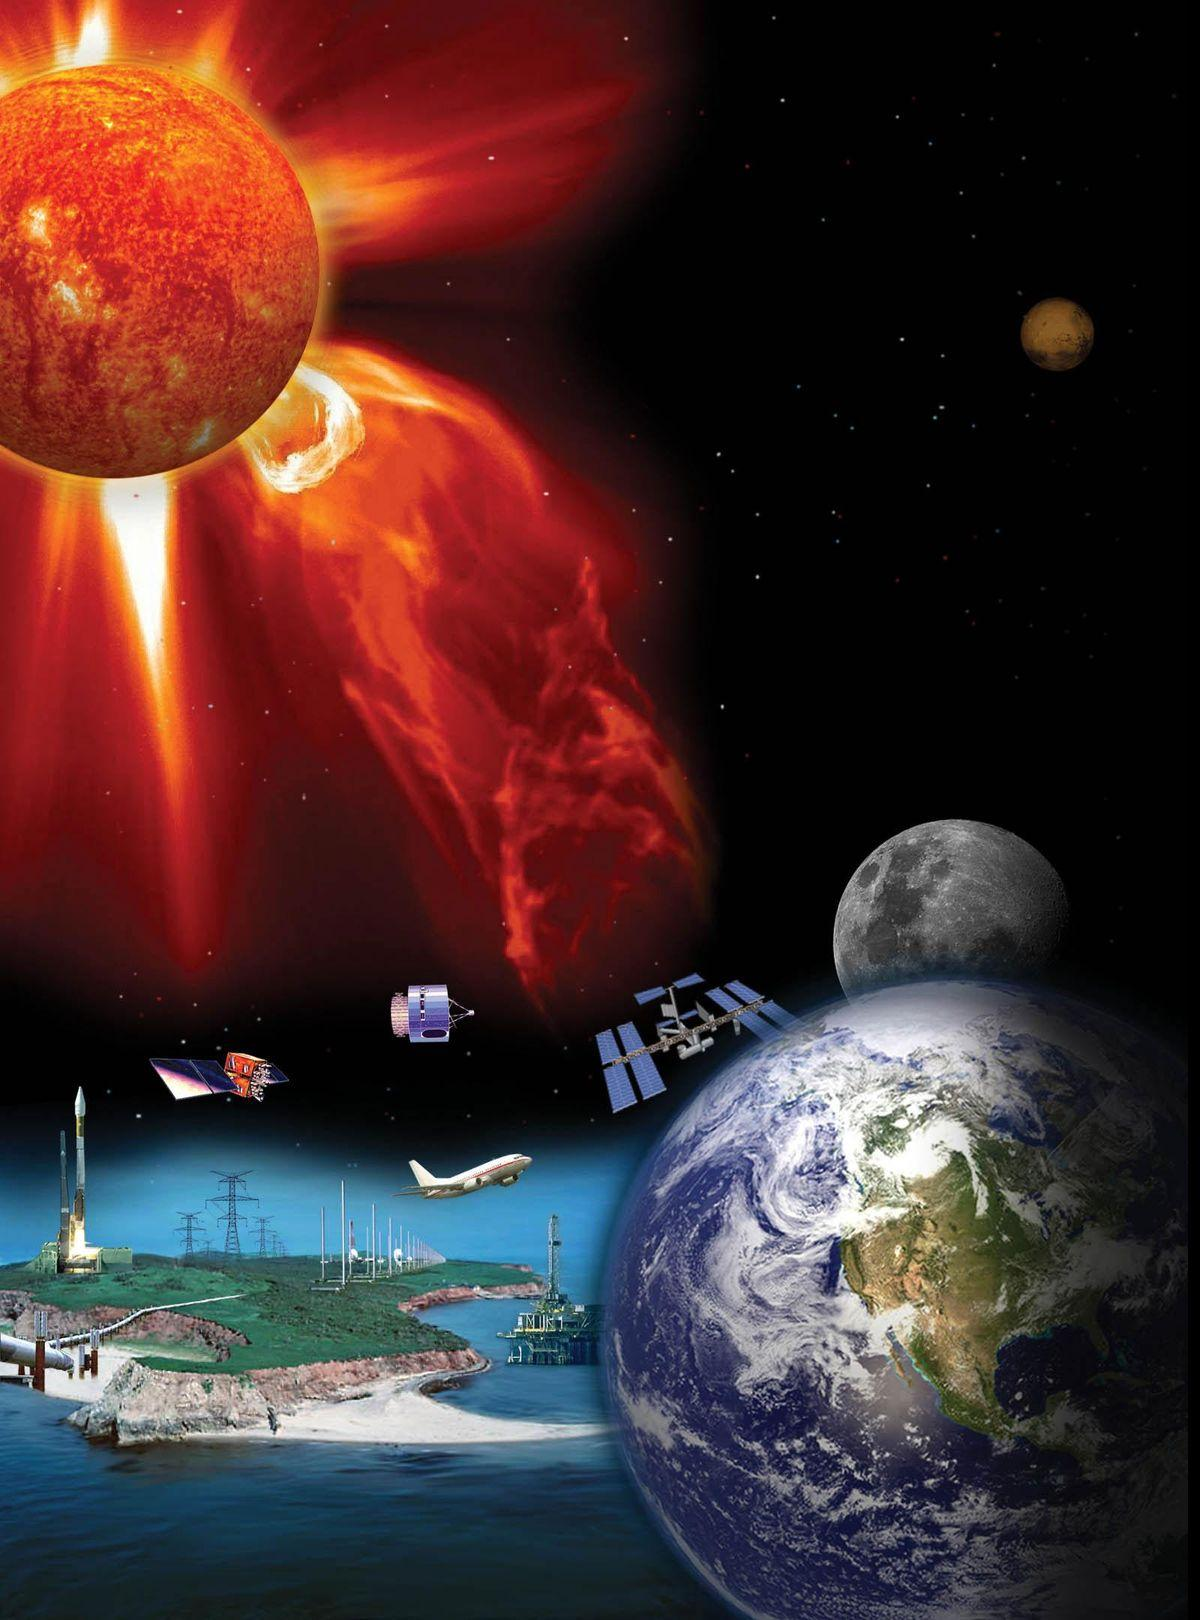 terrapapers.com  spaceweather (3)